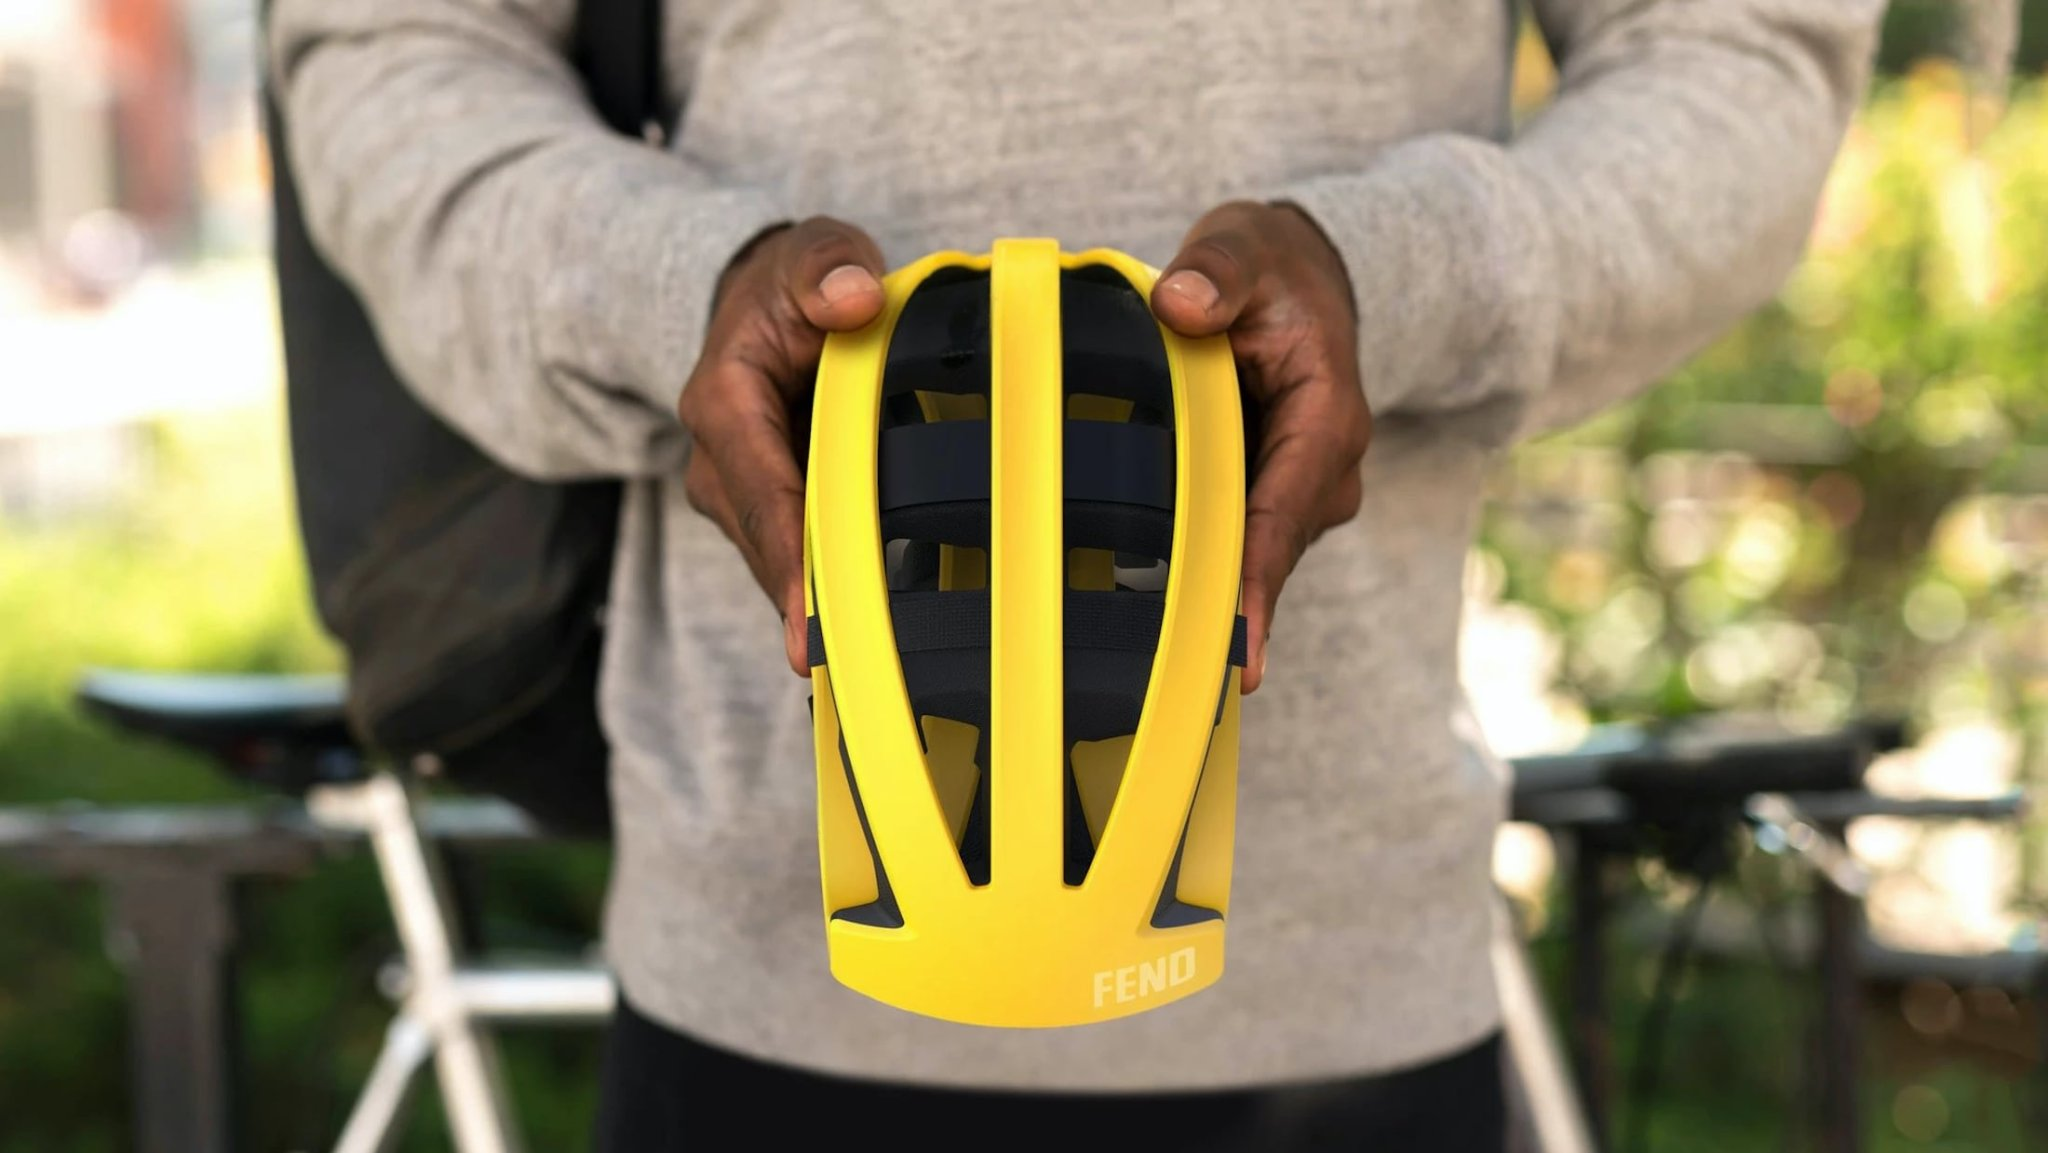 FEND One Foldable Bike Helmet folds up for easy storage in your bag